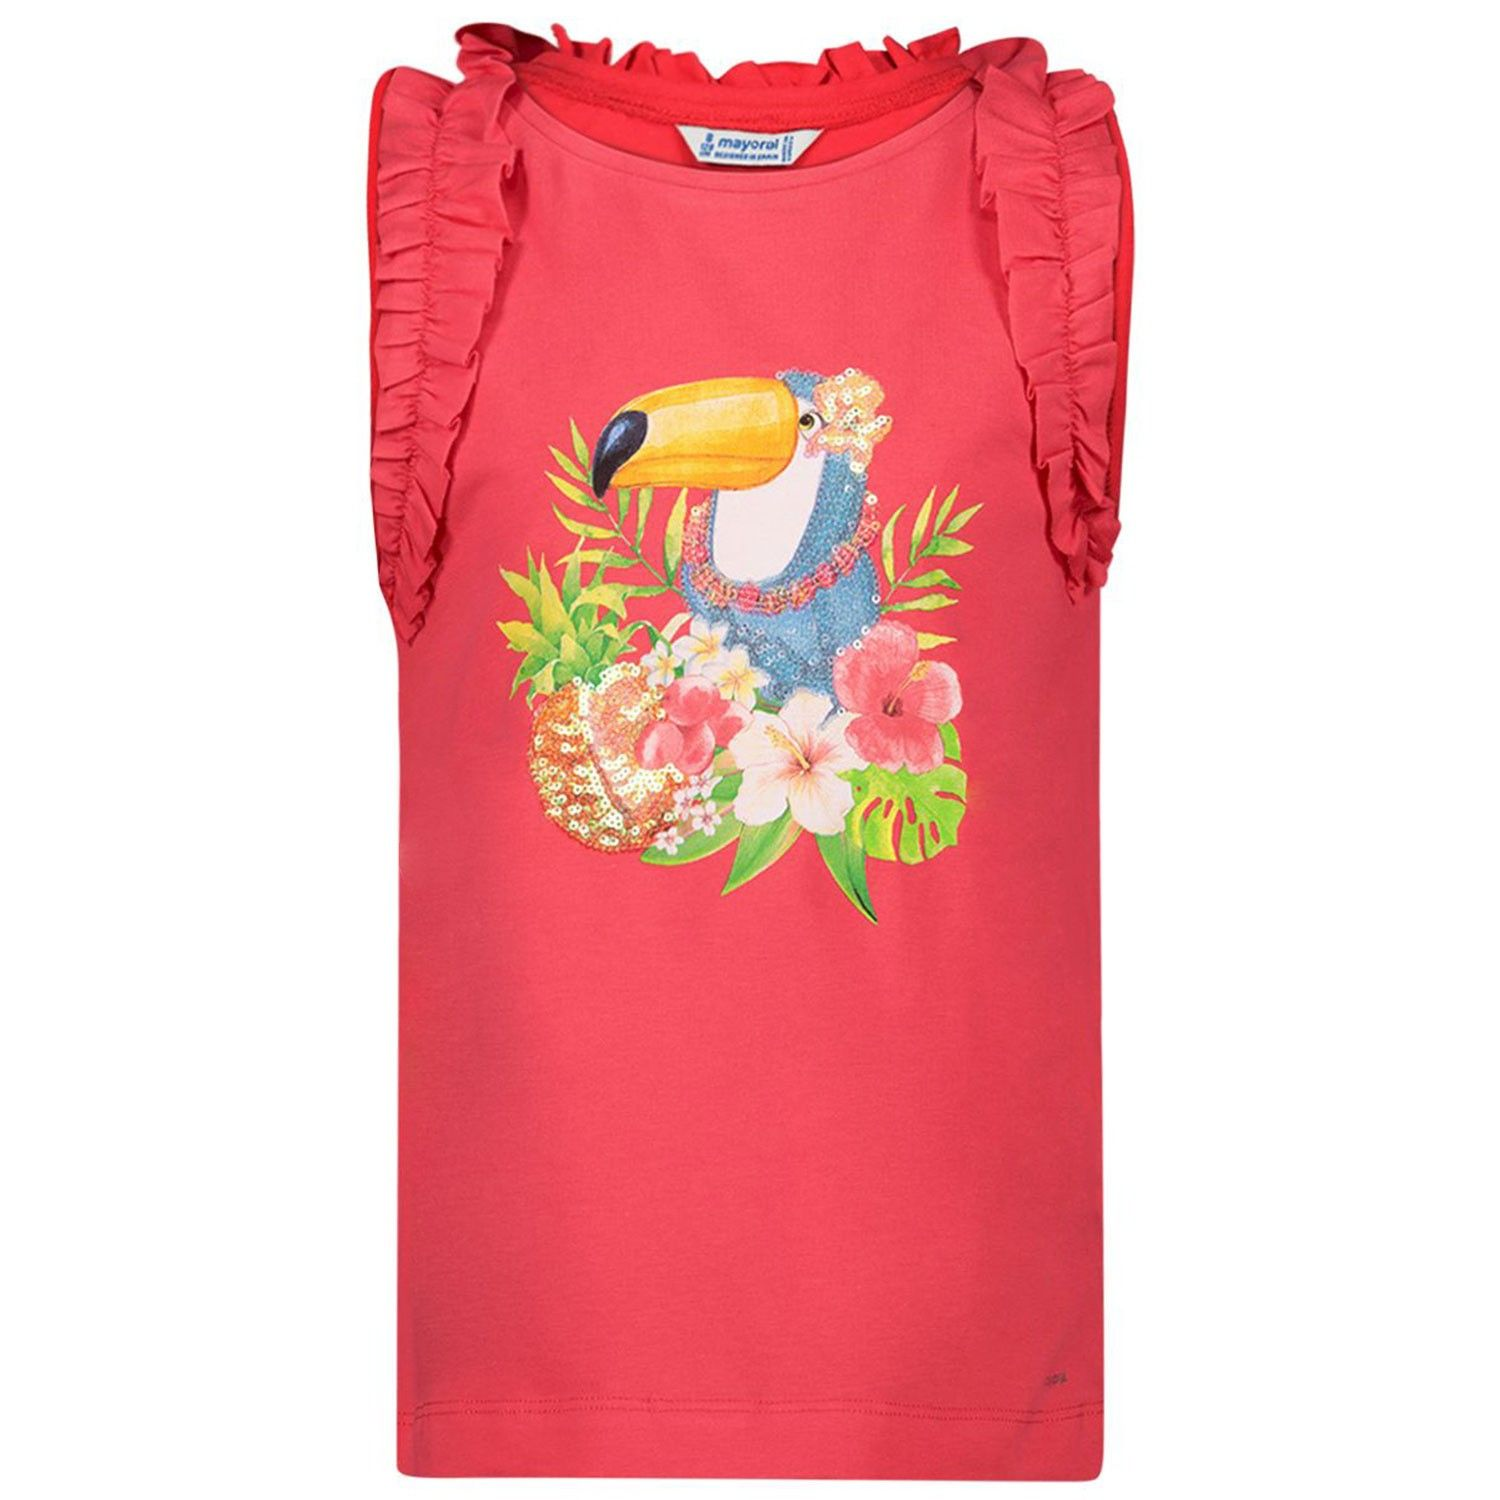 Picture of Mayoral 3025 kids t-shirt coral